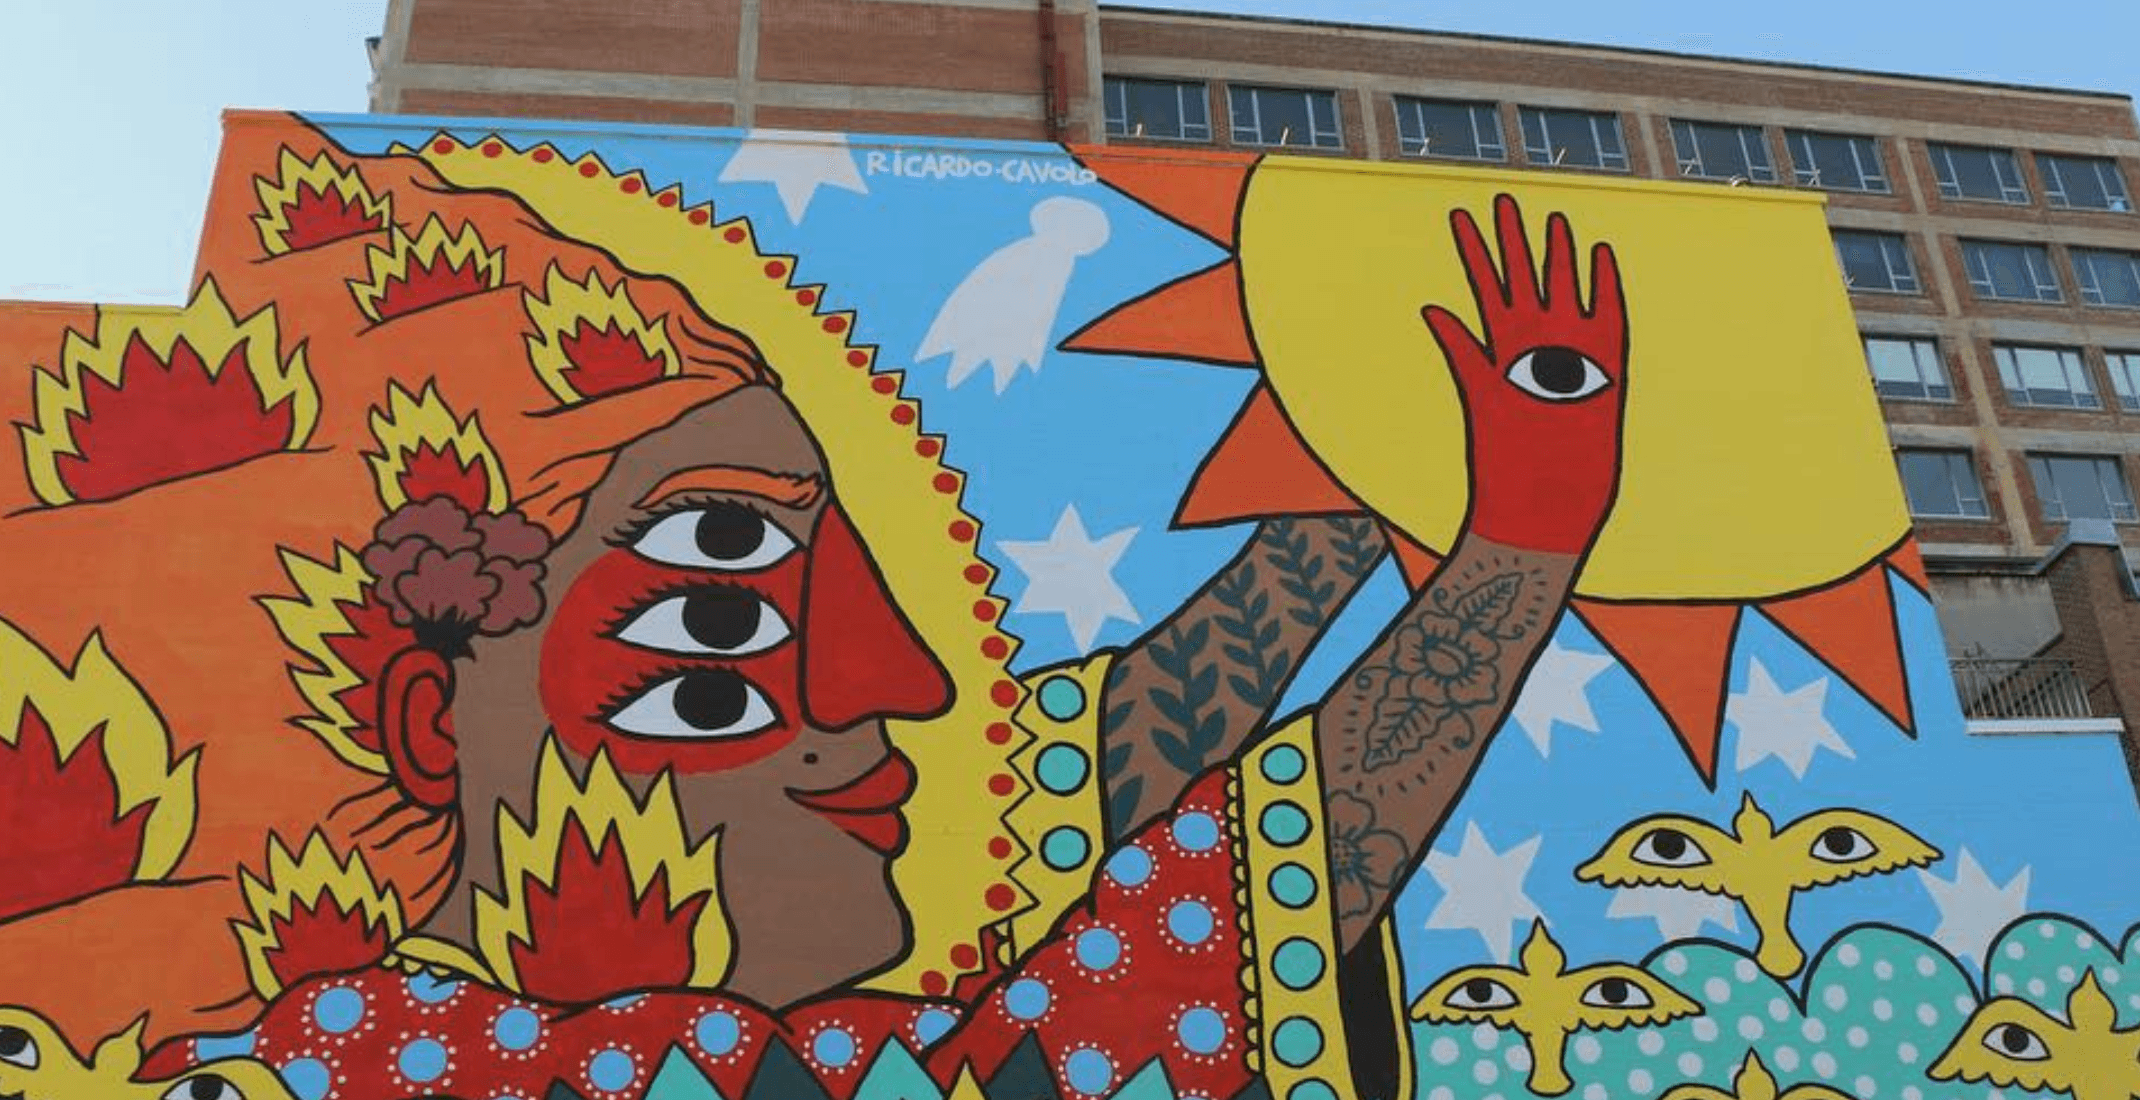 Montreals mural festival is back to celebrate street art in 2018